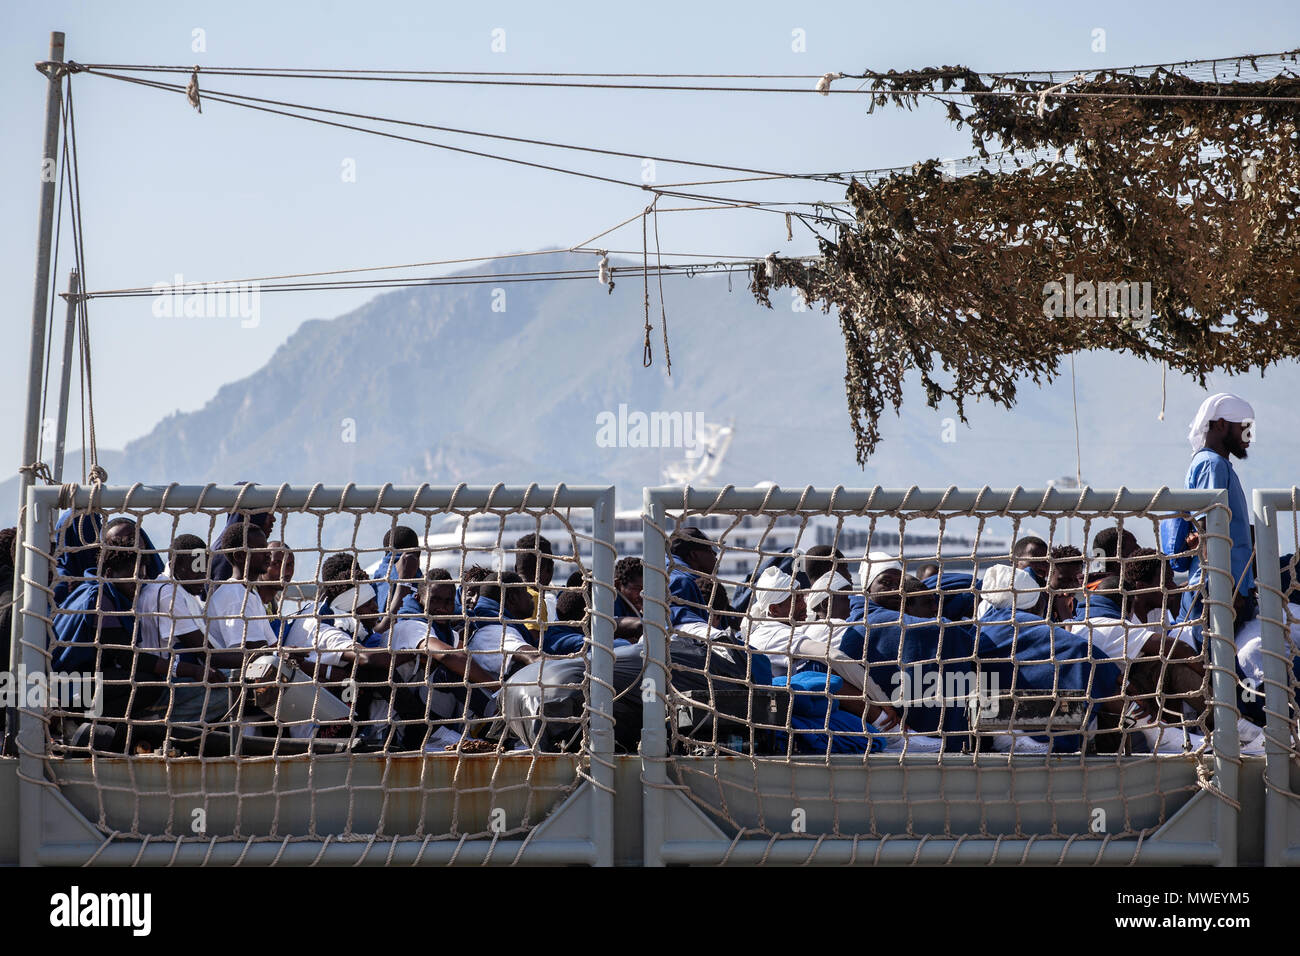 Palermo, the stages of disembarkation of 592 migrants at the port of Palermo from the Spanish ship Numancia. - Stock Image